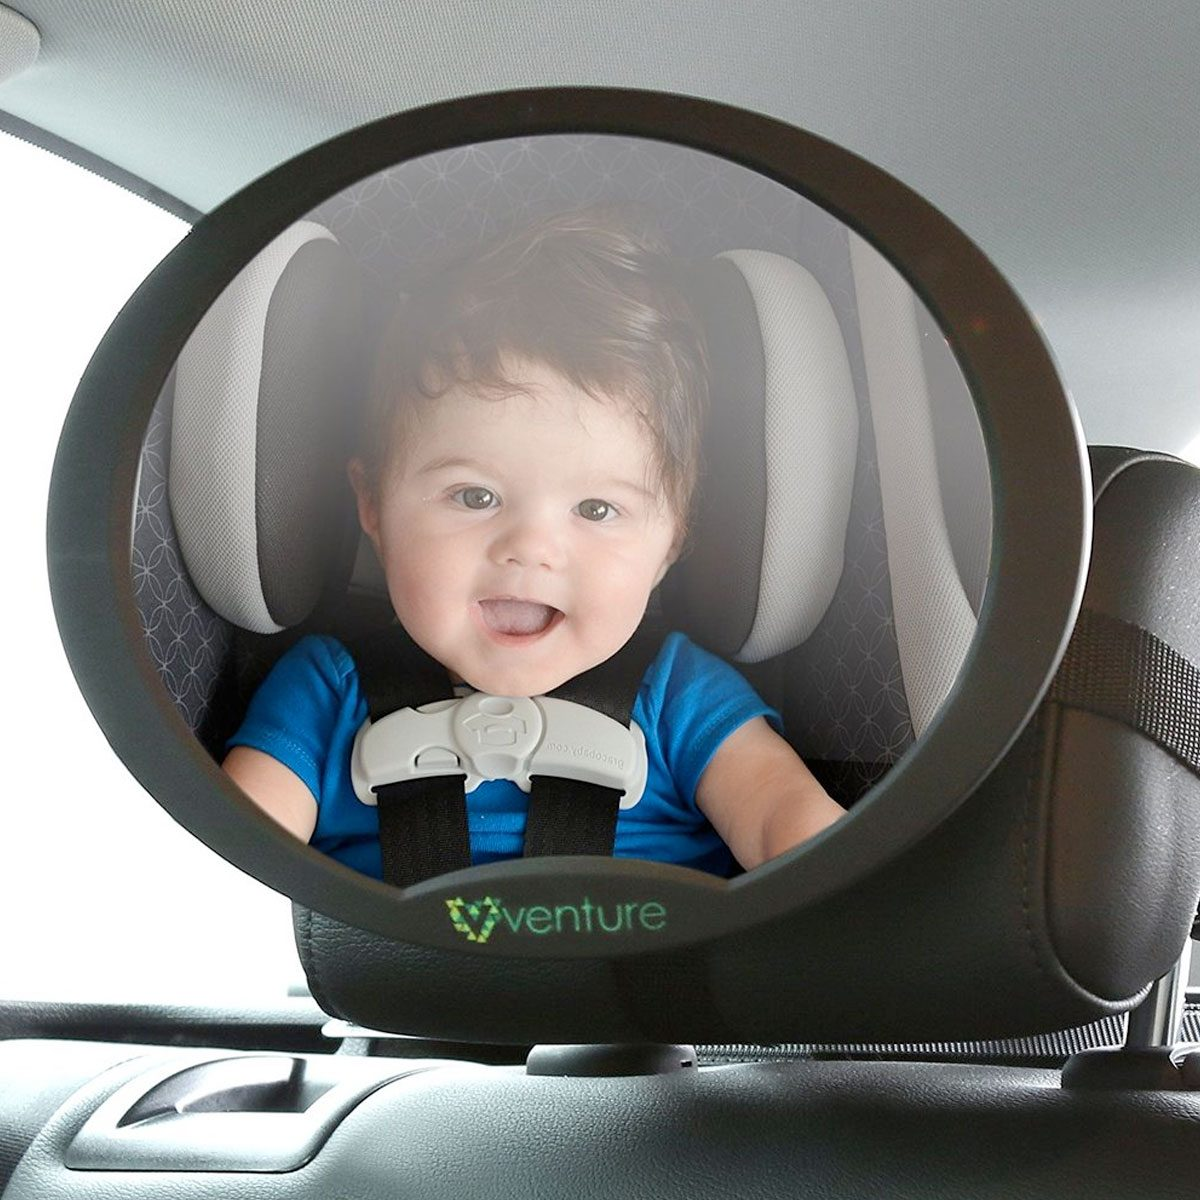 The Venture Acti-Vue gives you a great view of your child whislt driving